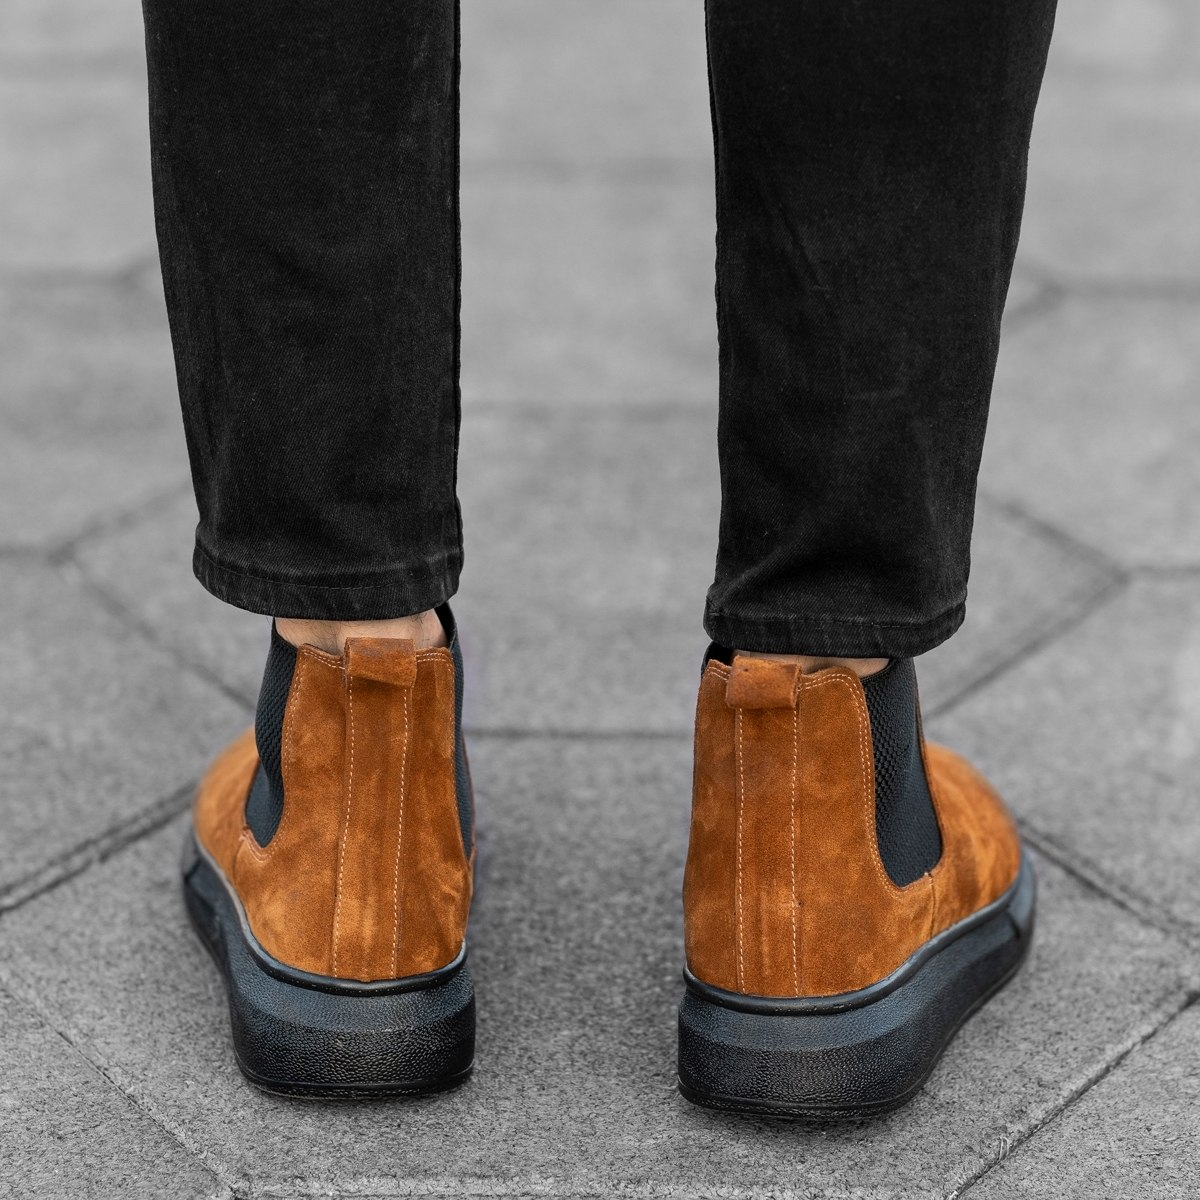 Genuine-Suede Hype Sole Chelsea Boots In Brown Mv Premium Brand - 4